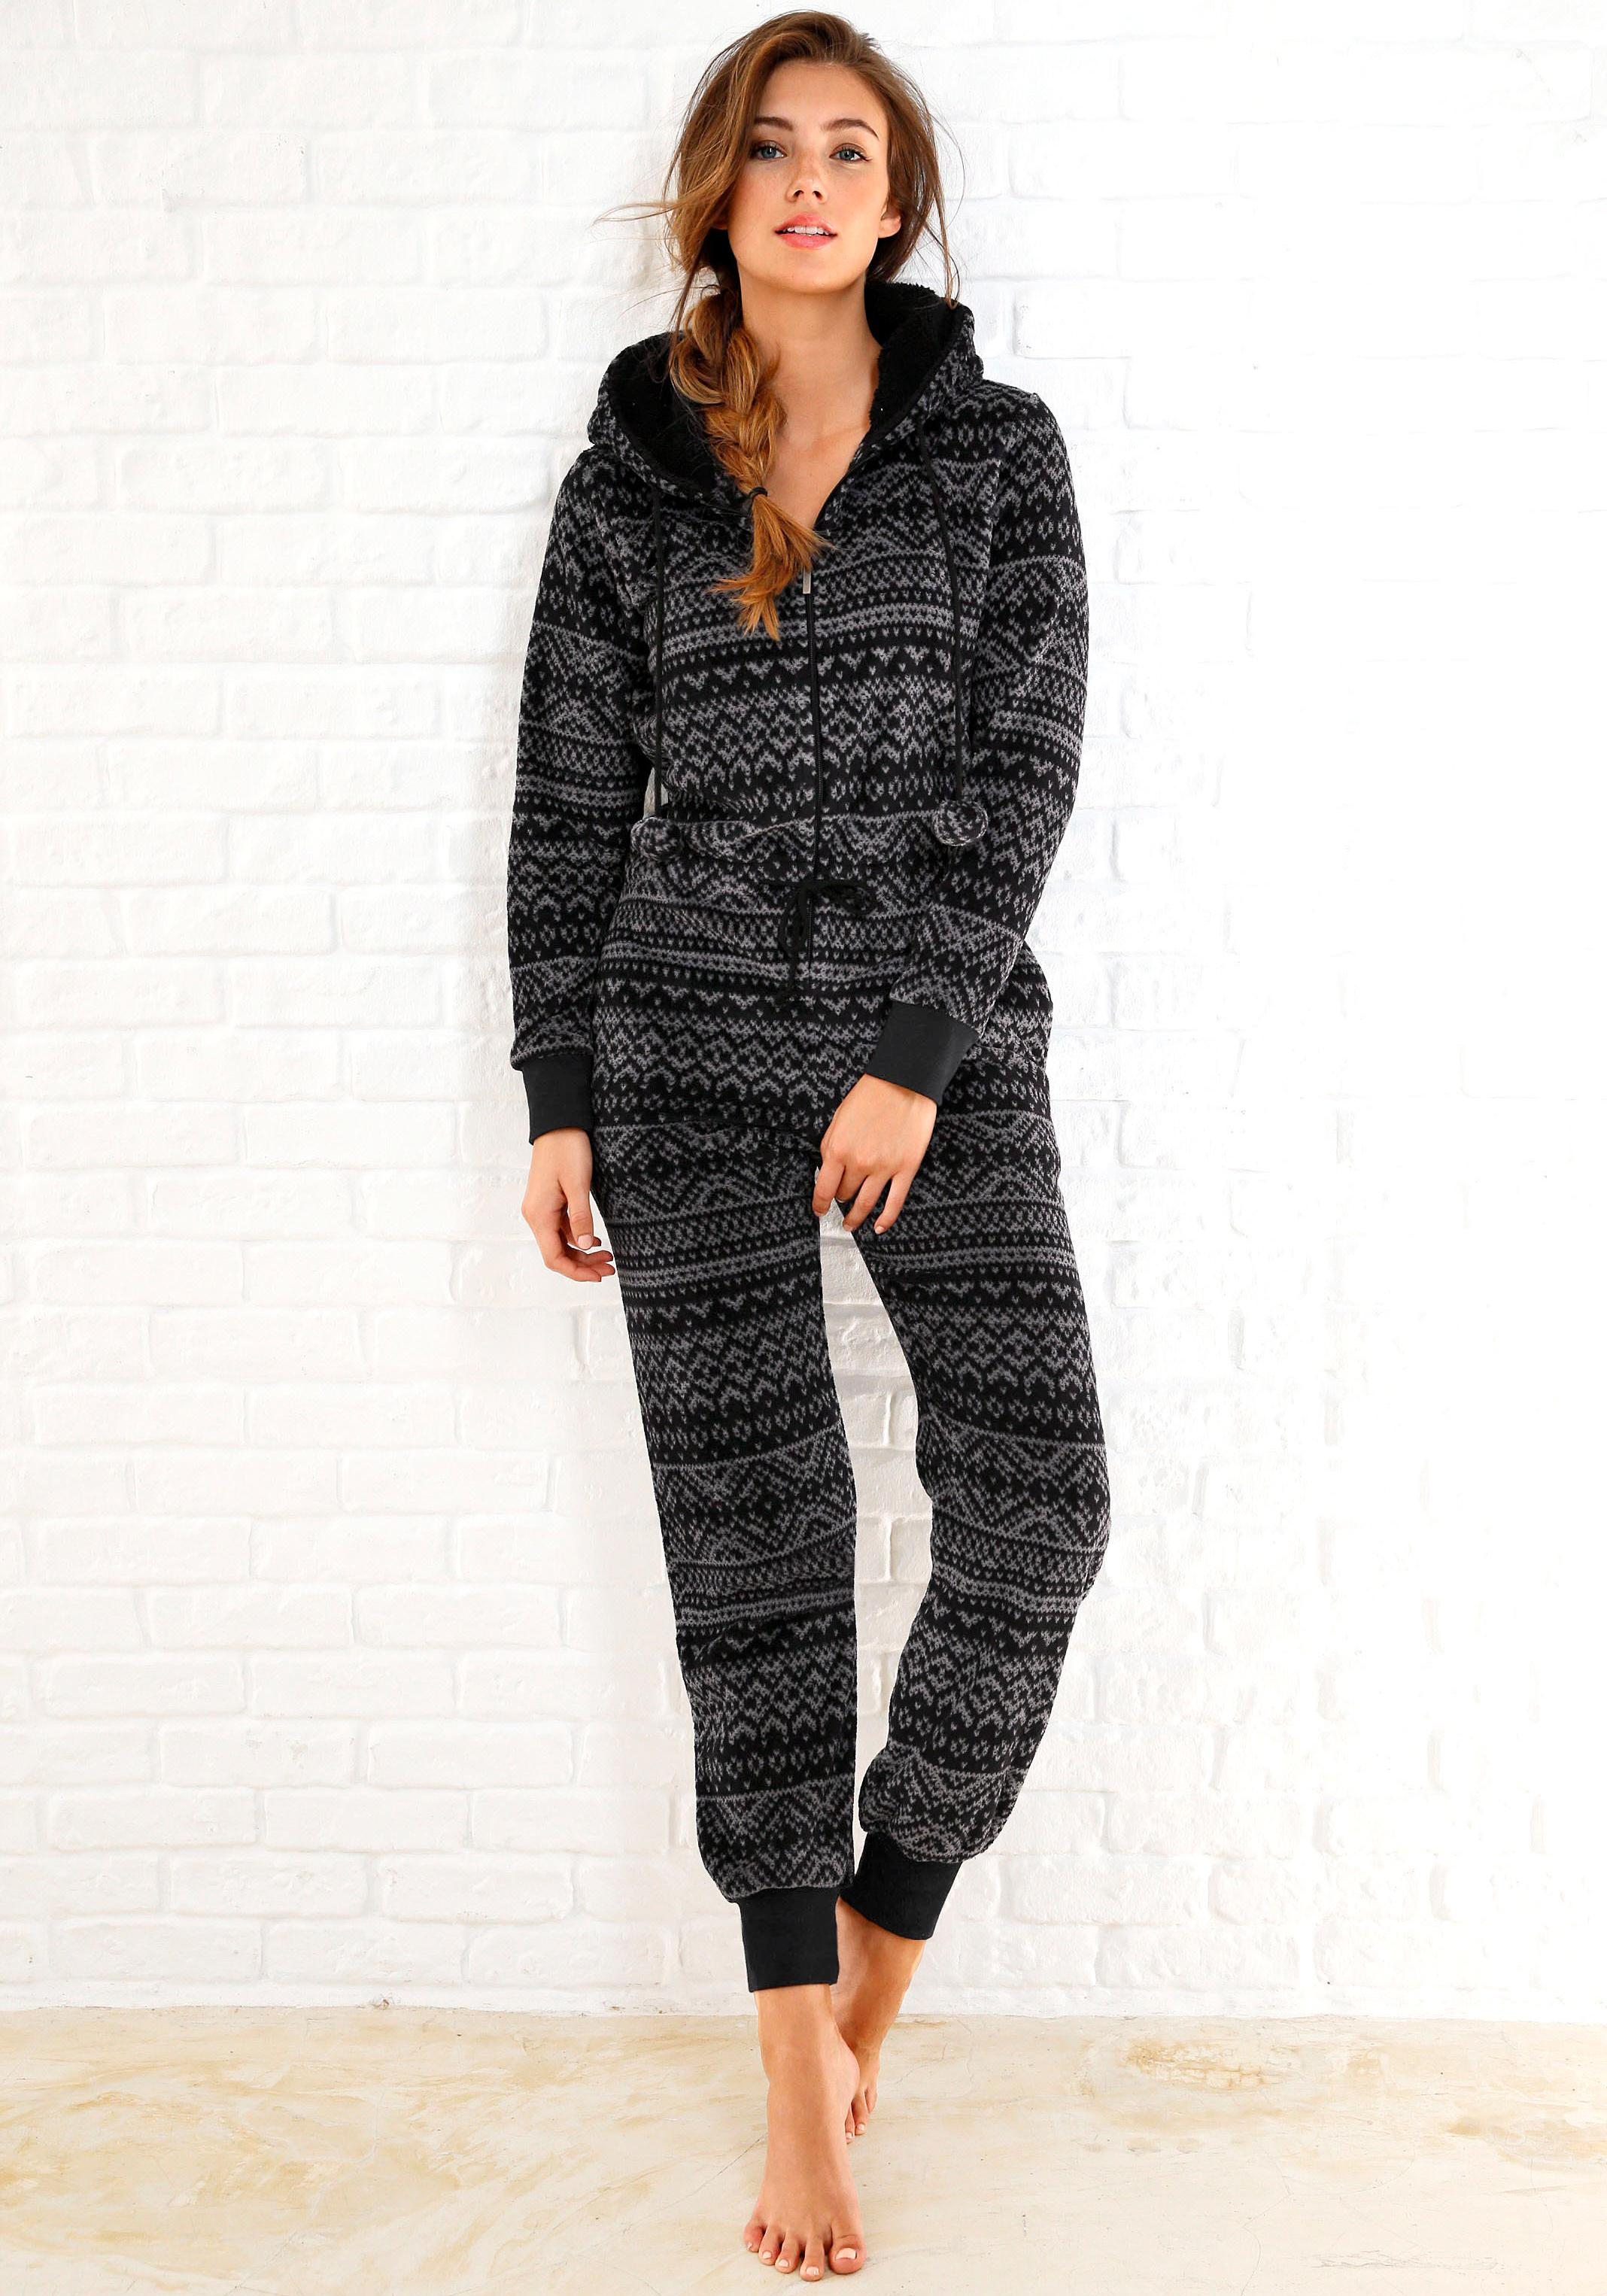 Rebelle Jumpsuit aus Fleece in schwarz-grauem Norwegerdesign